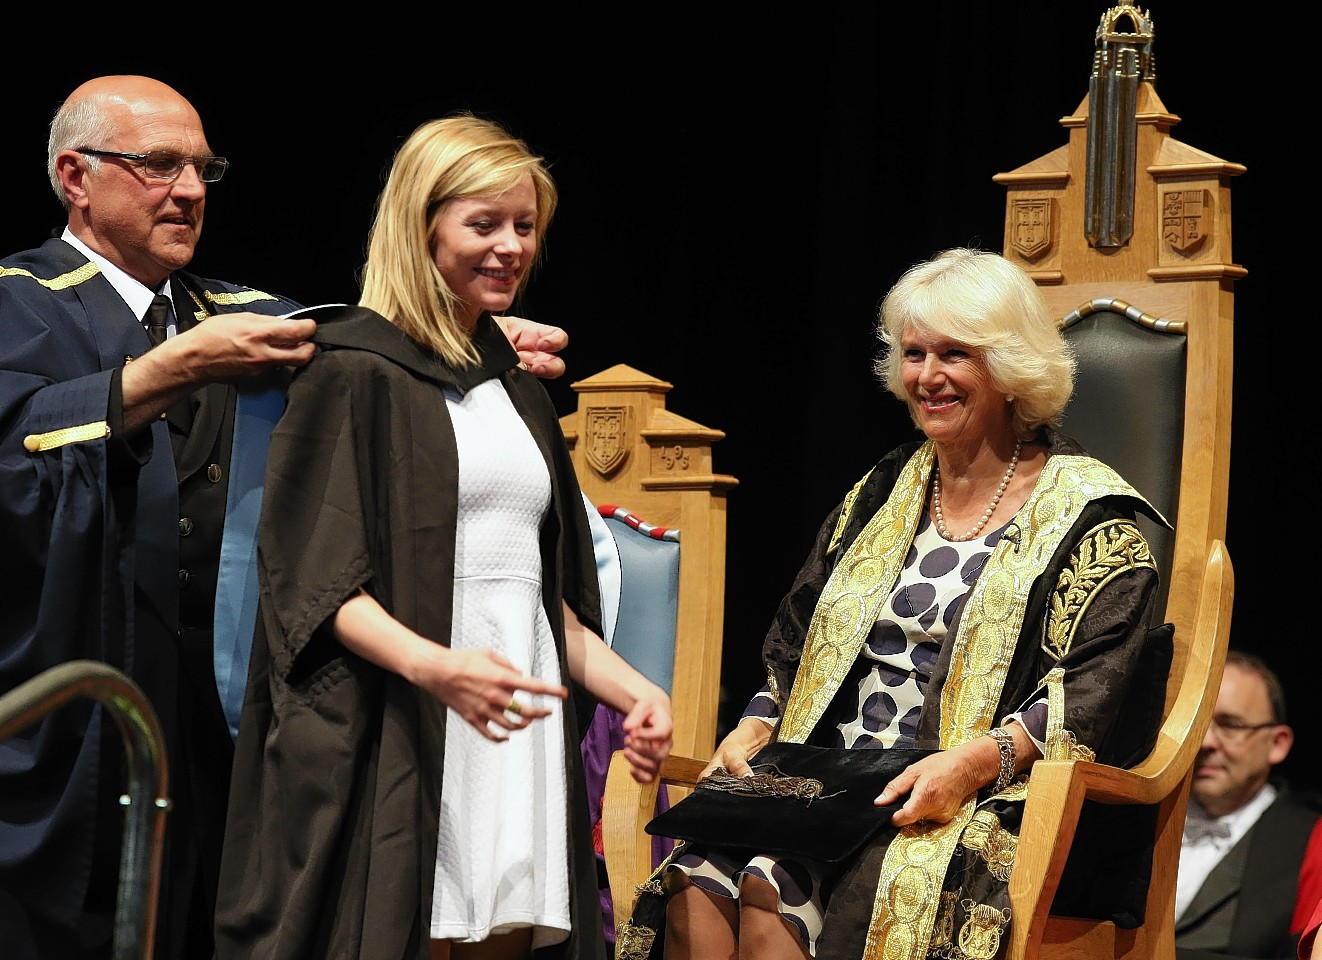 Camilla, The Duchess of Rothesay, at Aberdeen Graduations